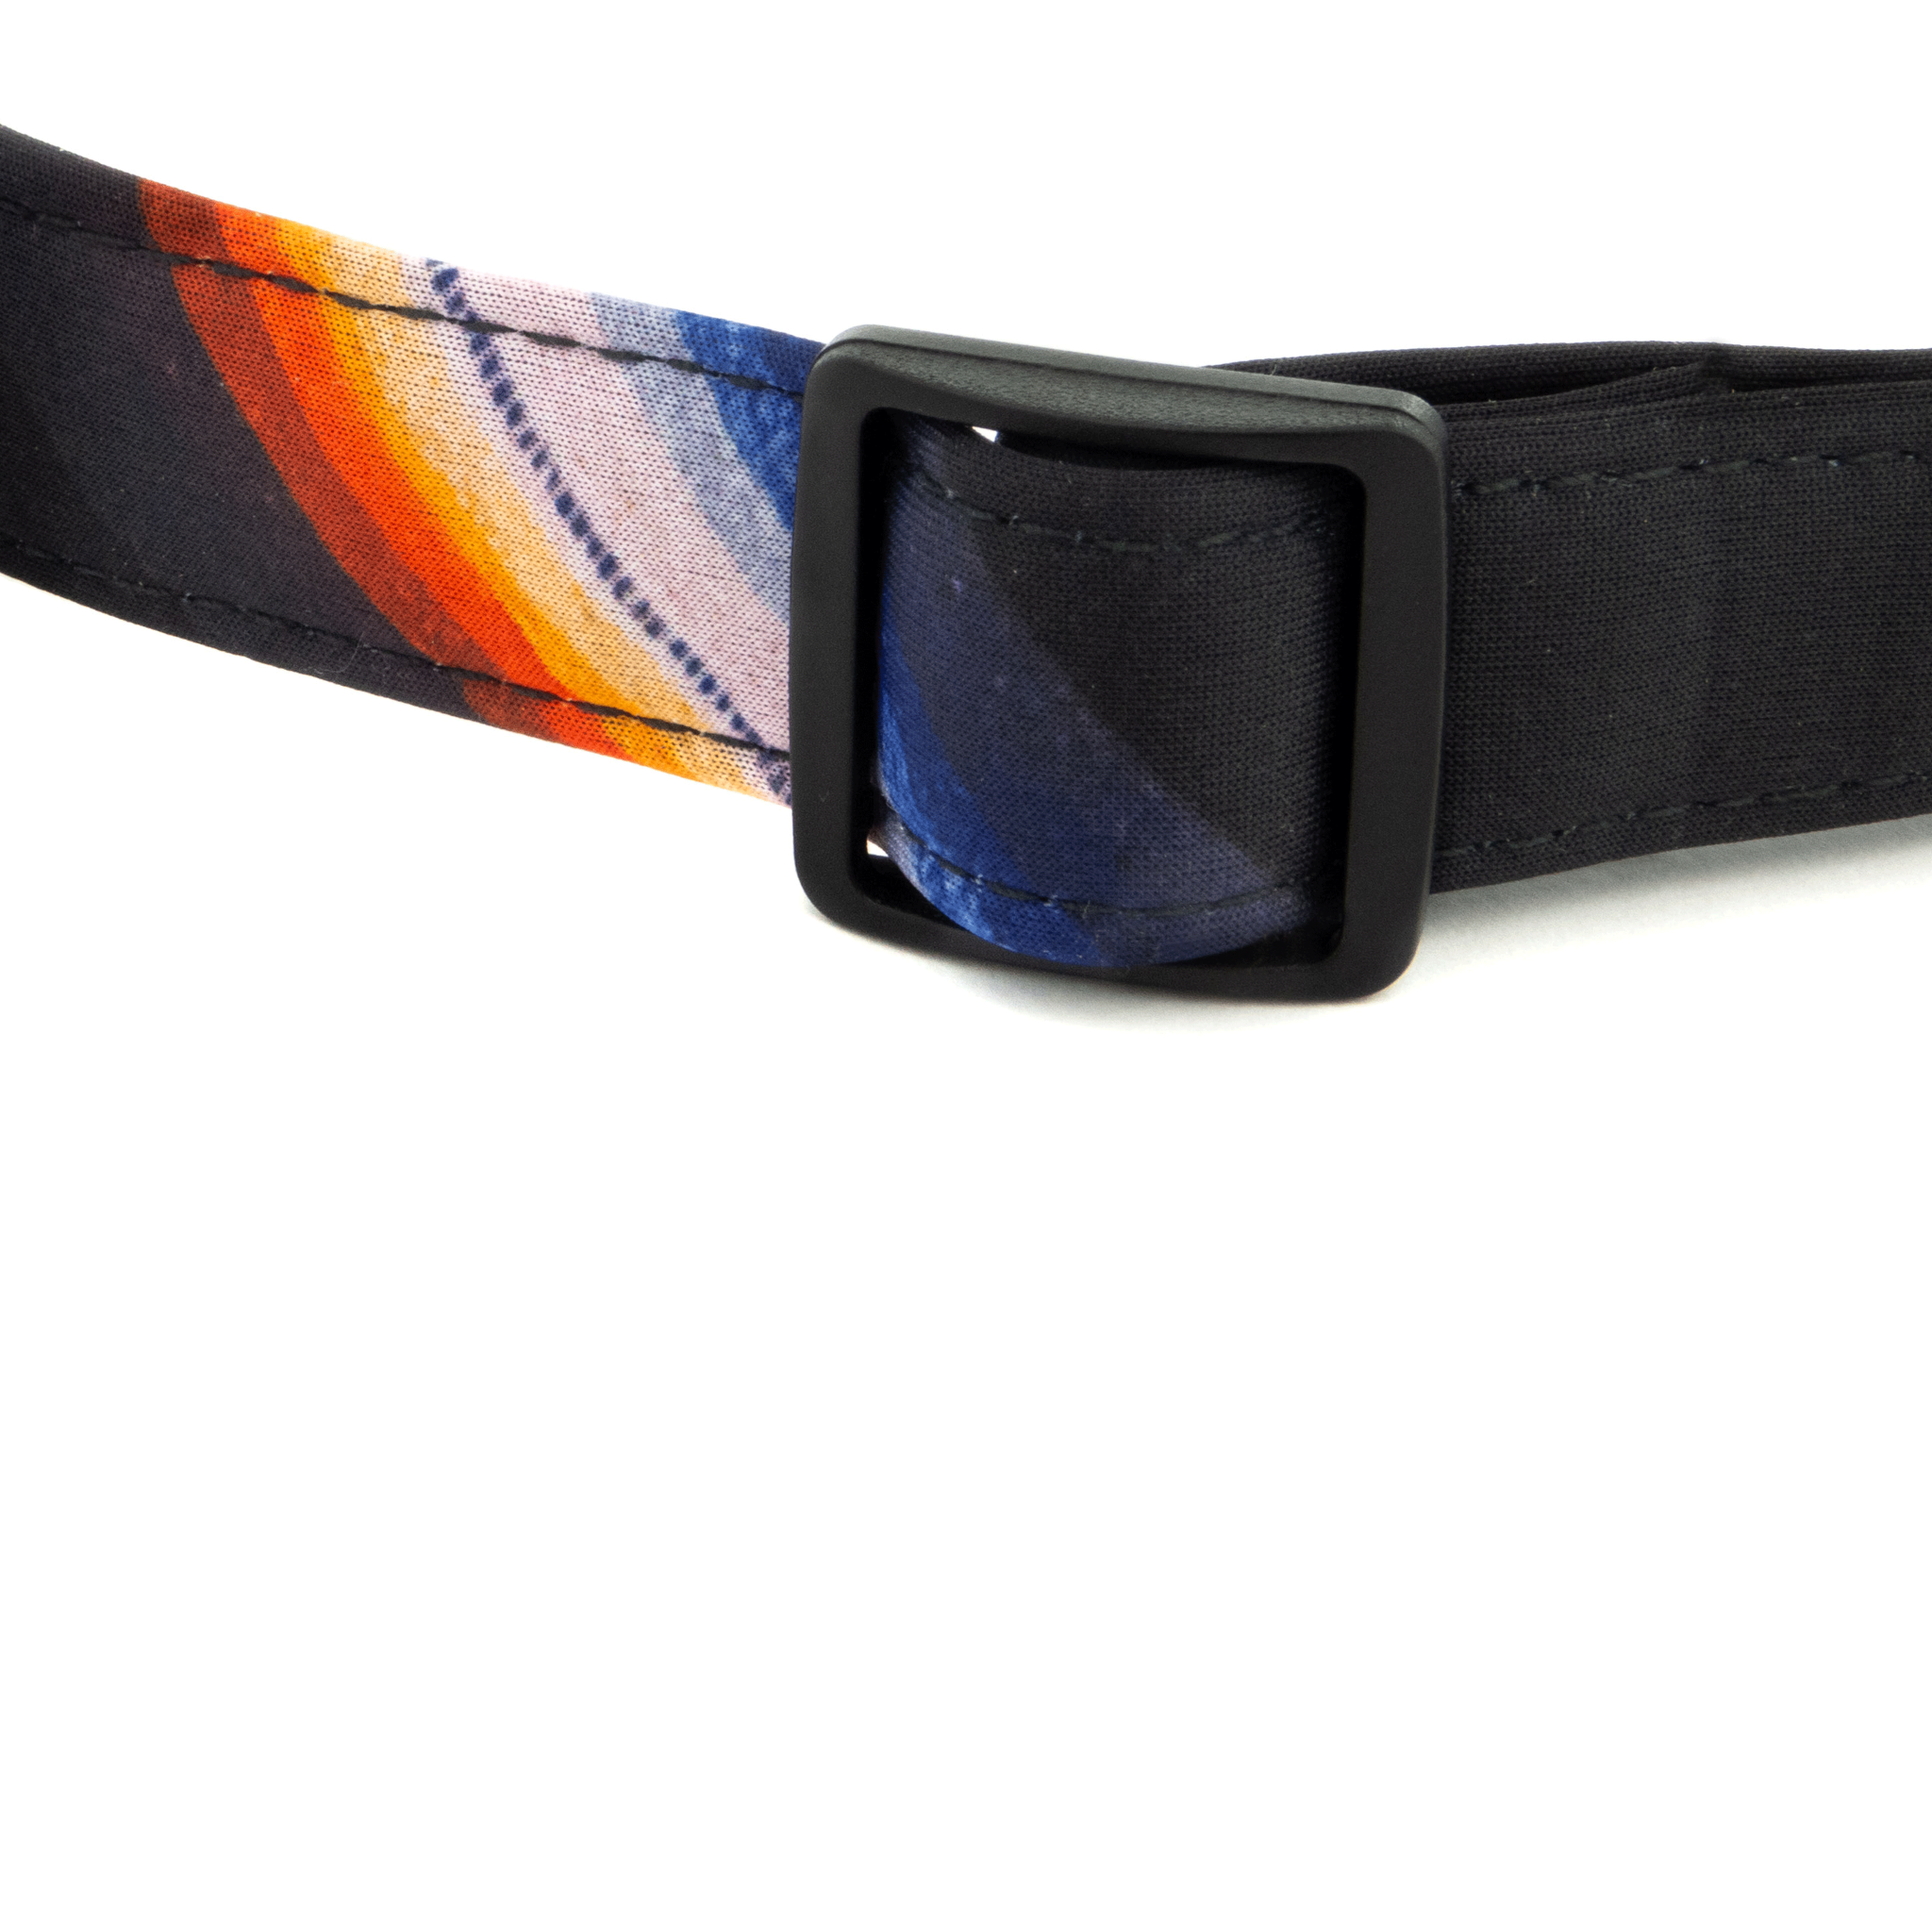 Neoprene close up of Bingin Dog 'Back in Black' dog collar. A solid black print with one blue, orange & white serape stripe detail.